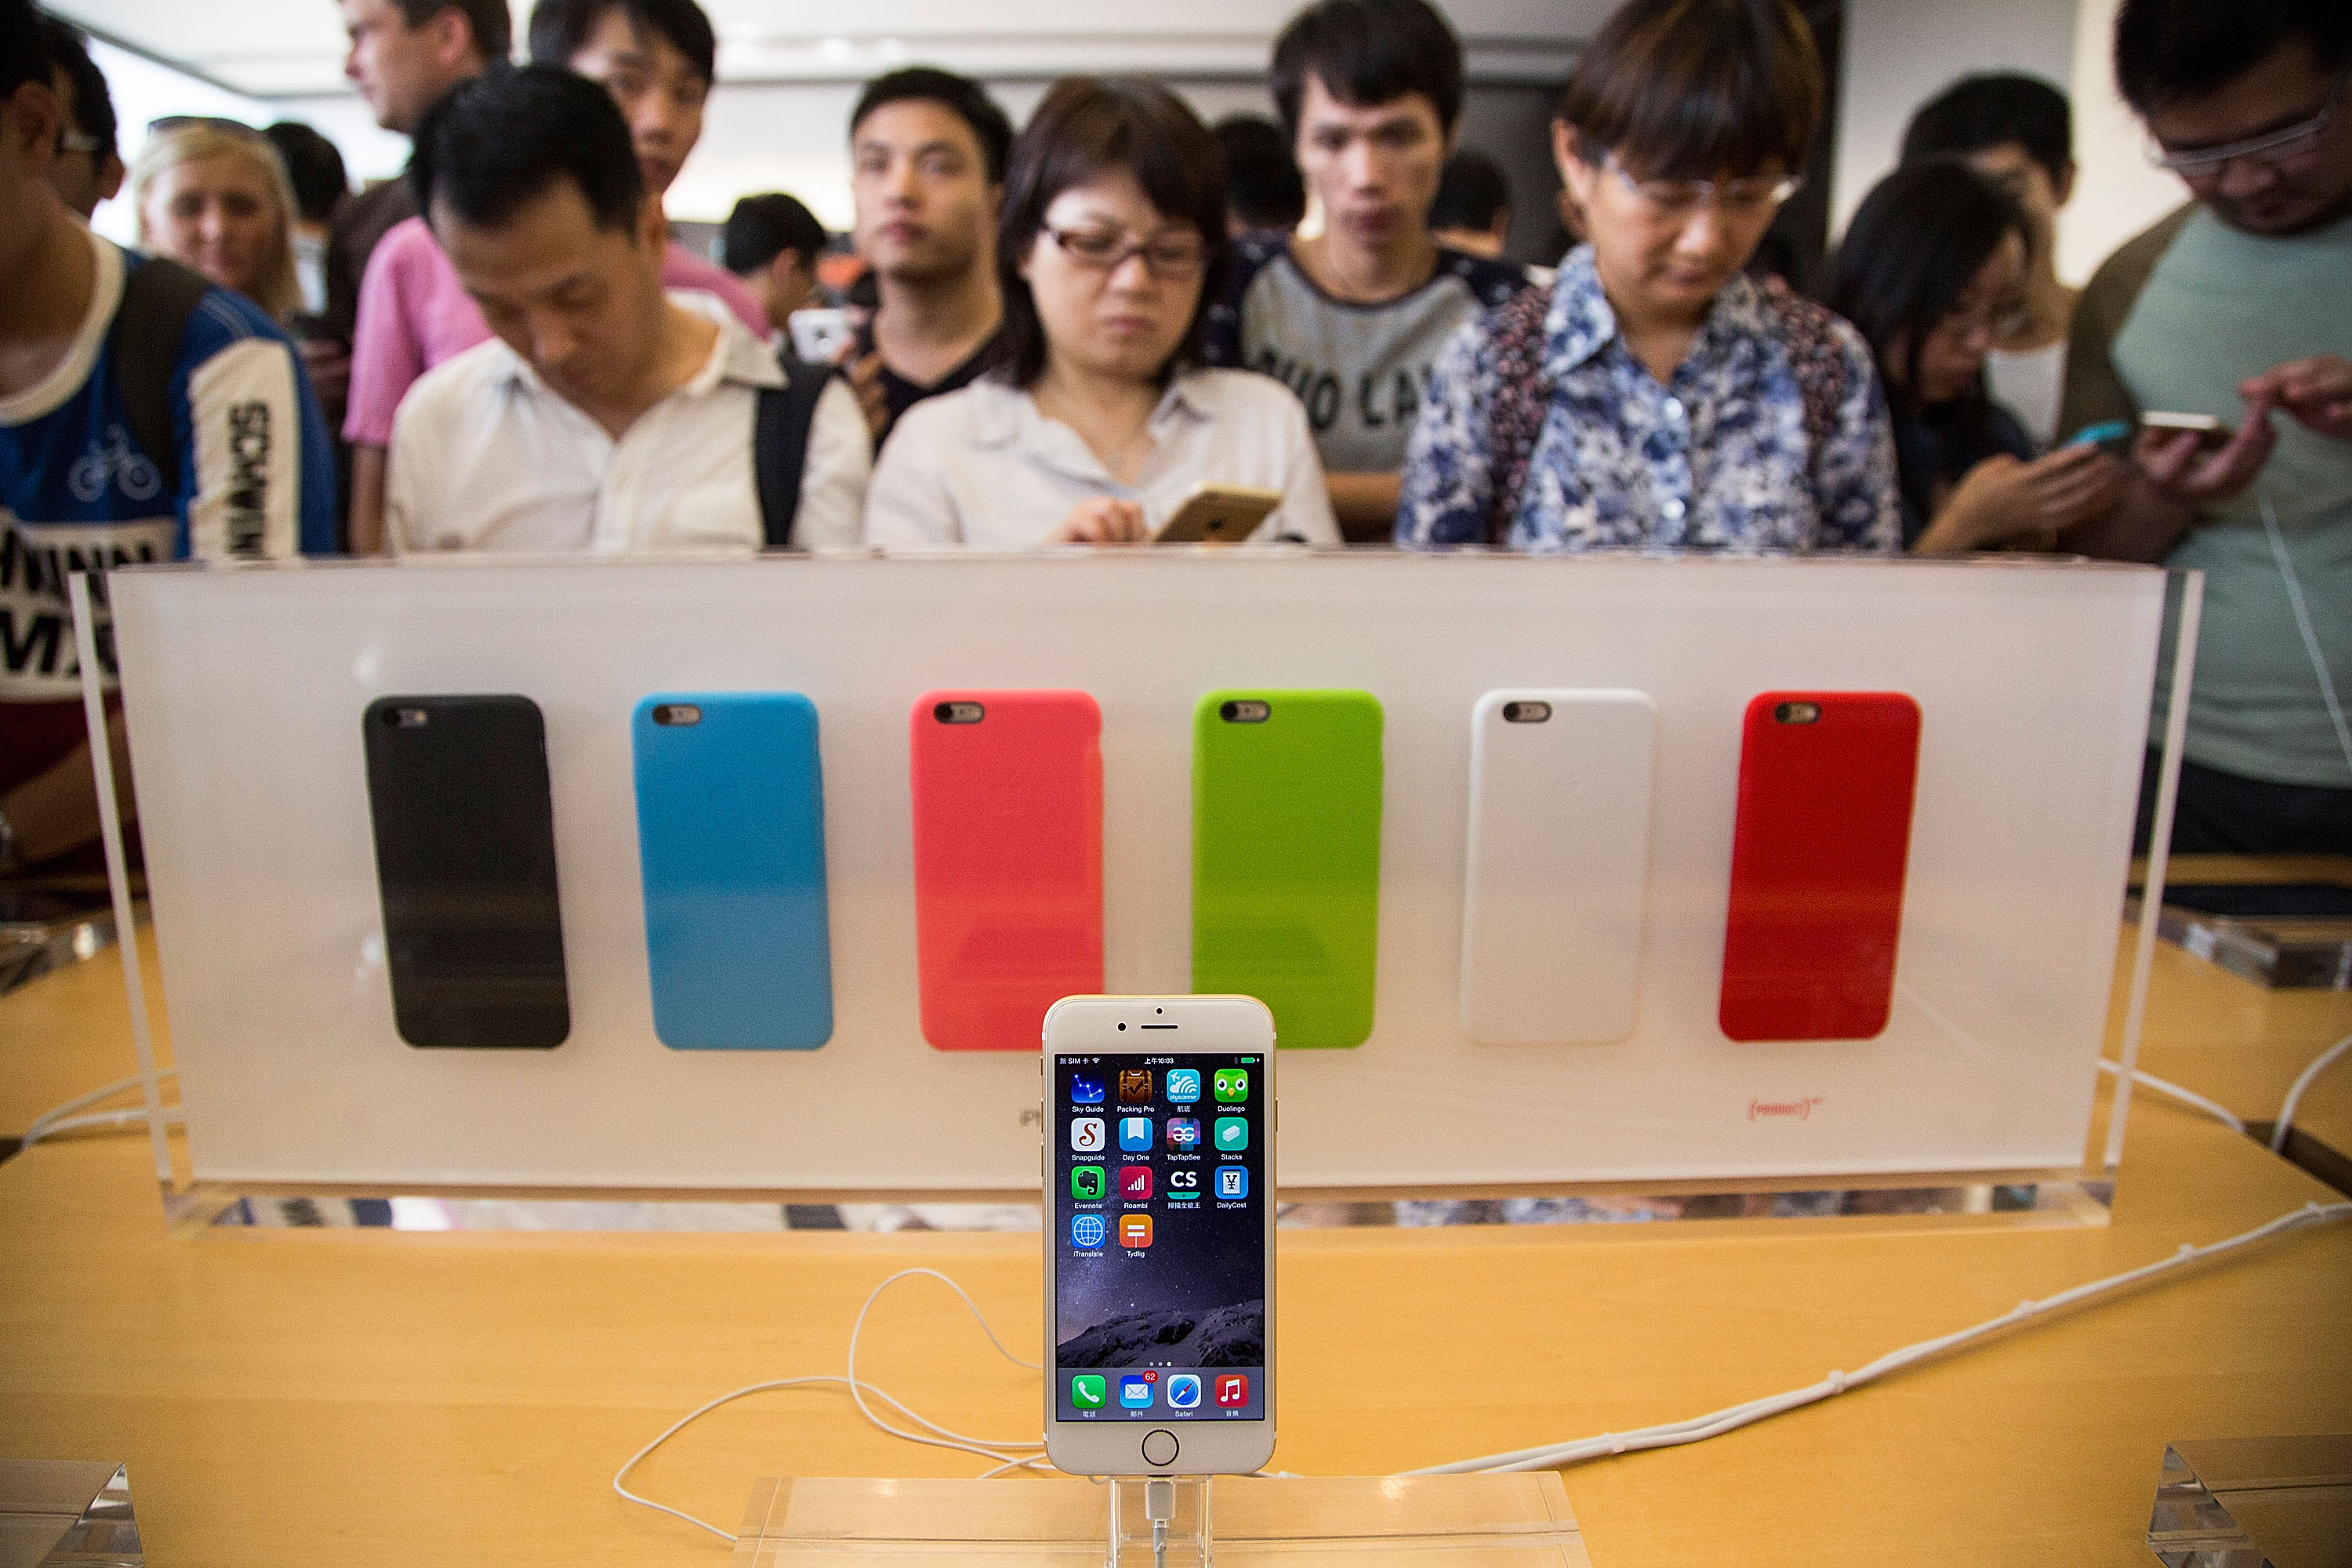 iphone 6, iphone 6 lines, iphone 6 store, iphone 6 release date, iphone 6 release, iphone 6 photos, iphone 6 pictures